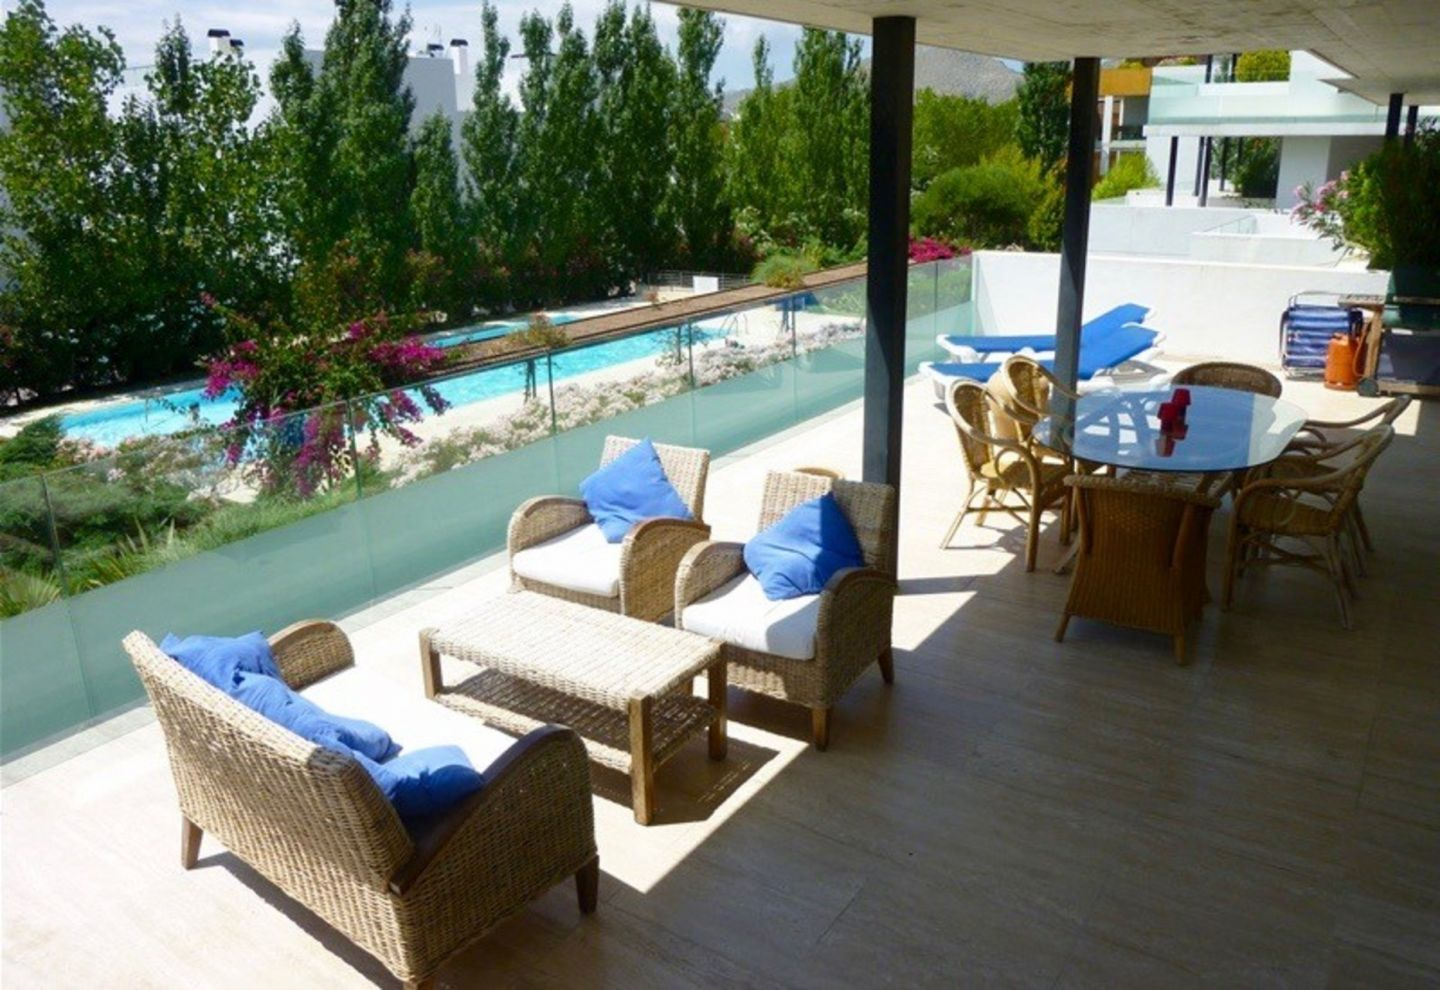 3 Bed Apartment for sale in PUERTO POLLENSA 10